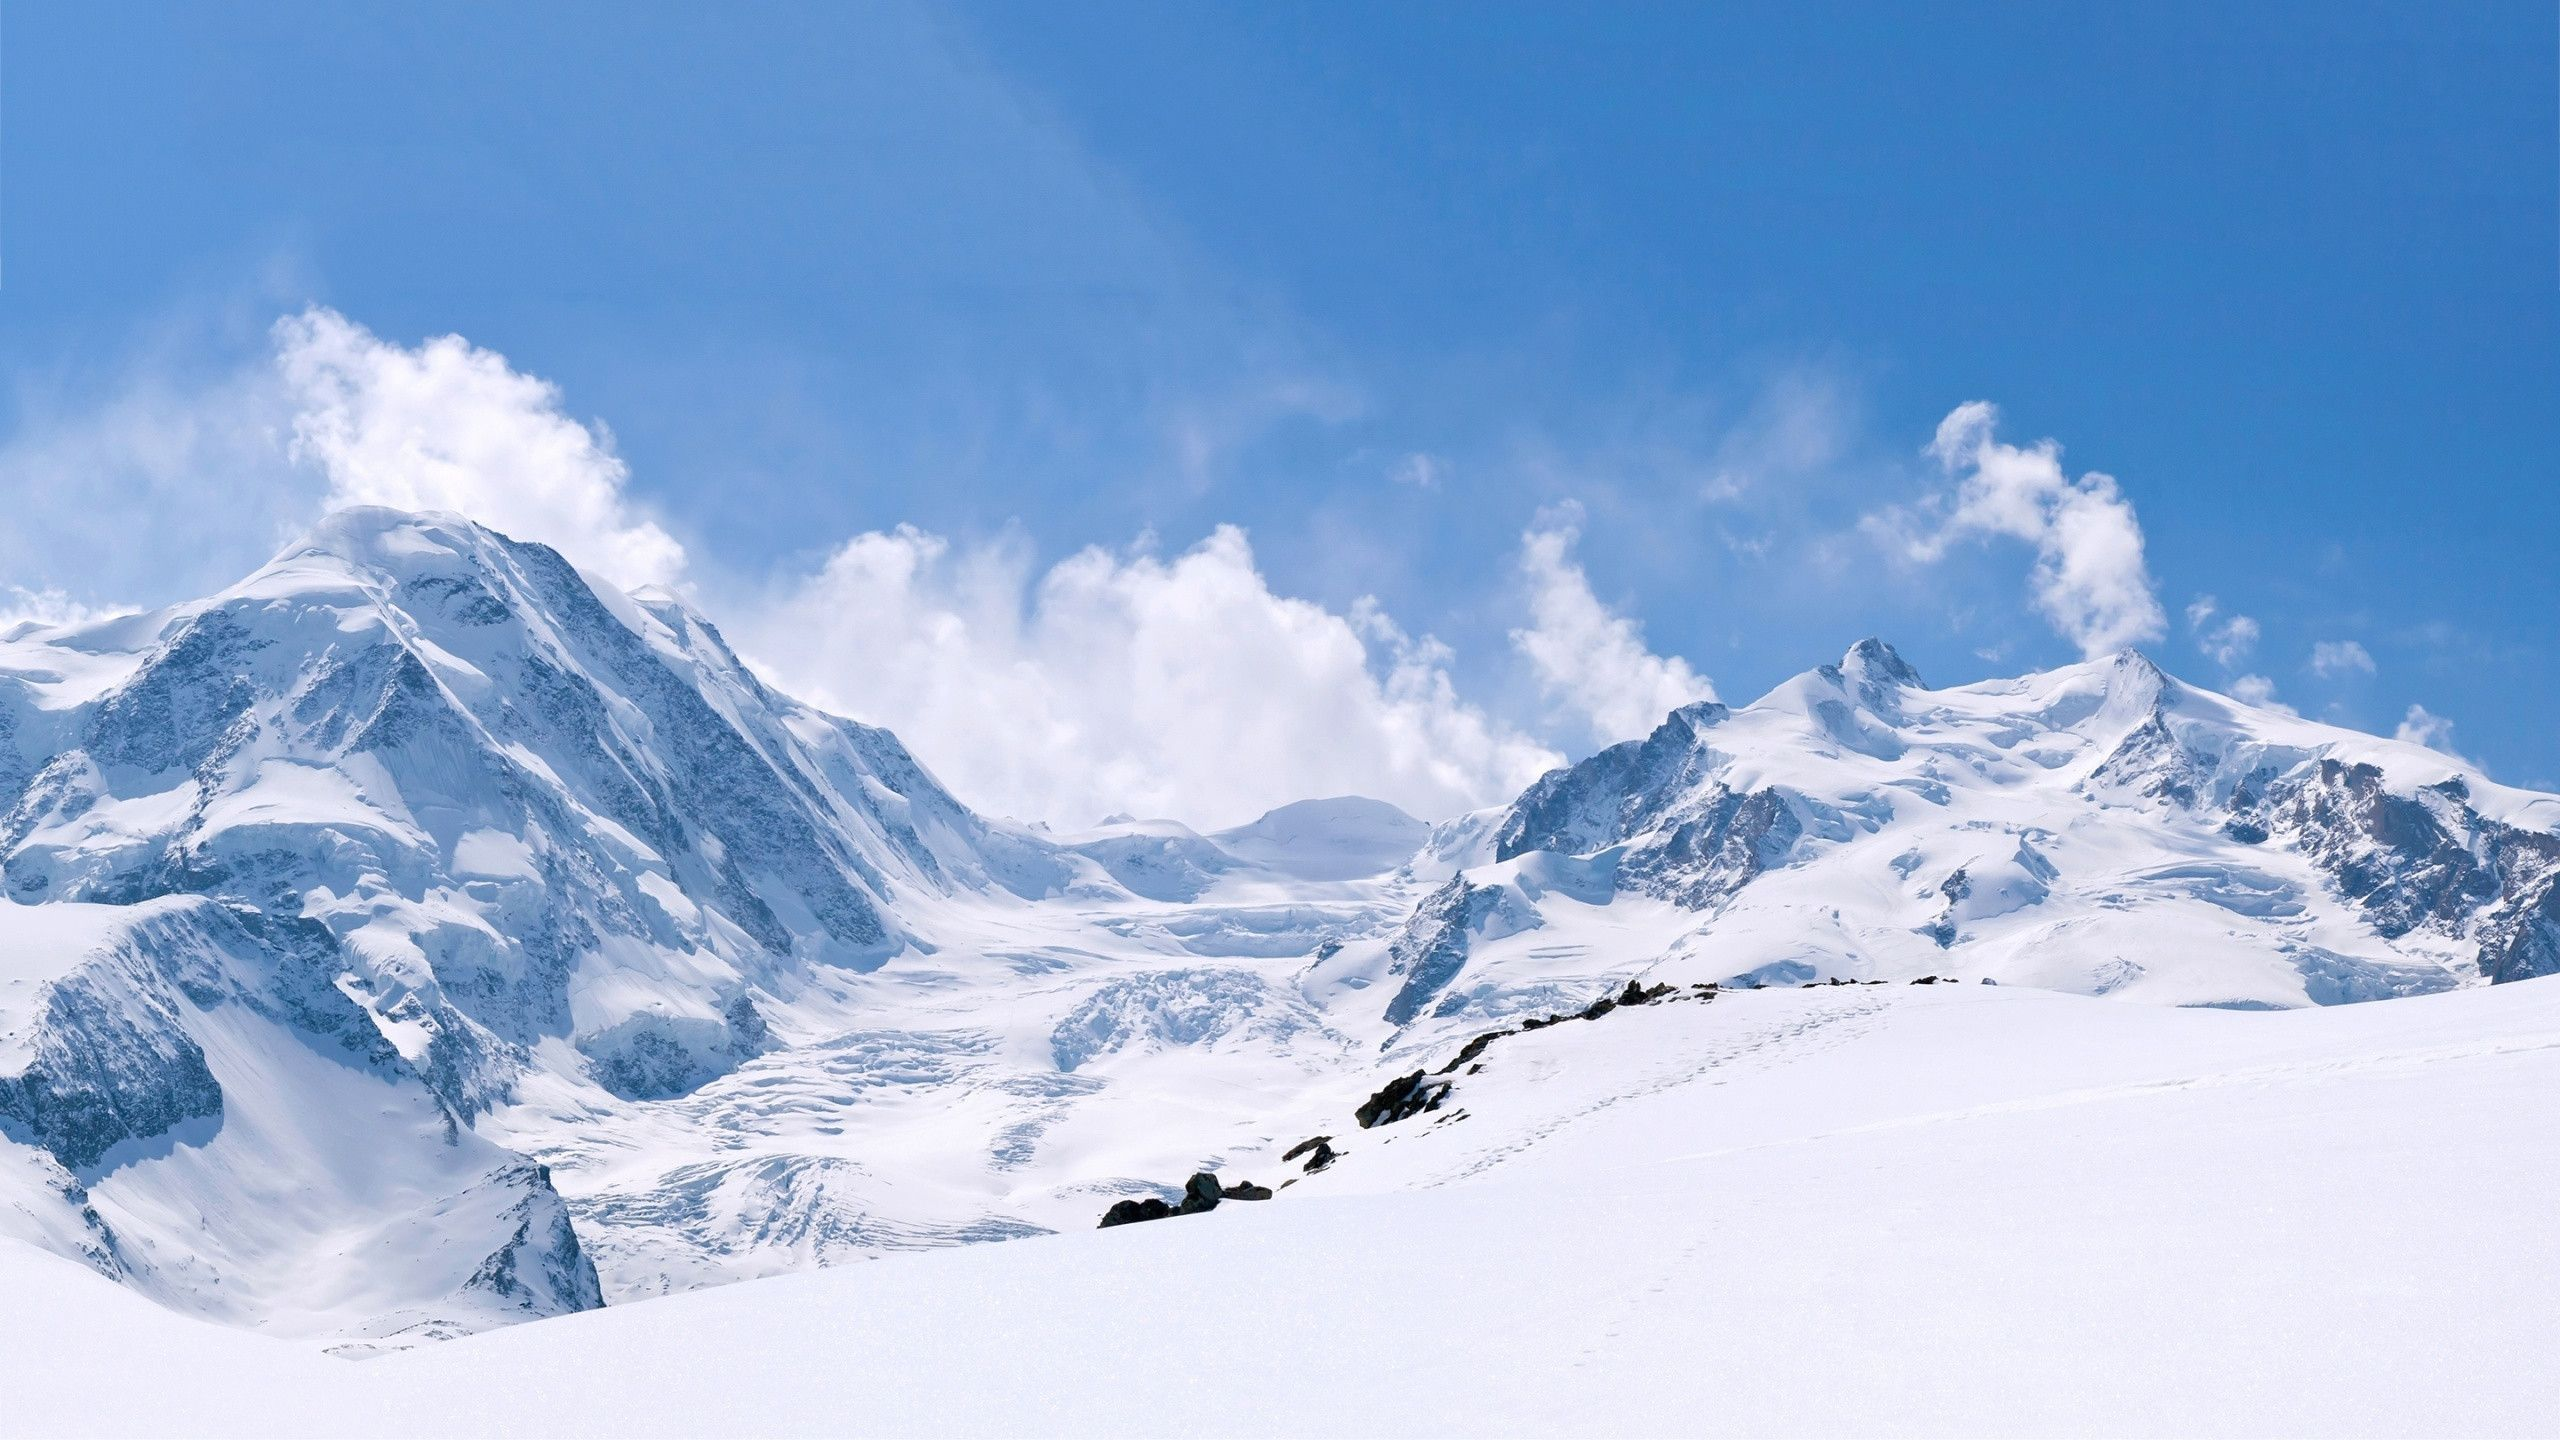 Winter Mountains Hd